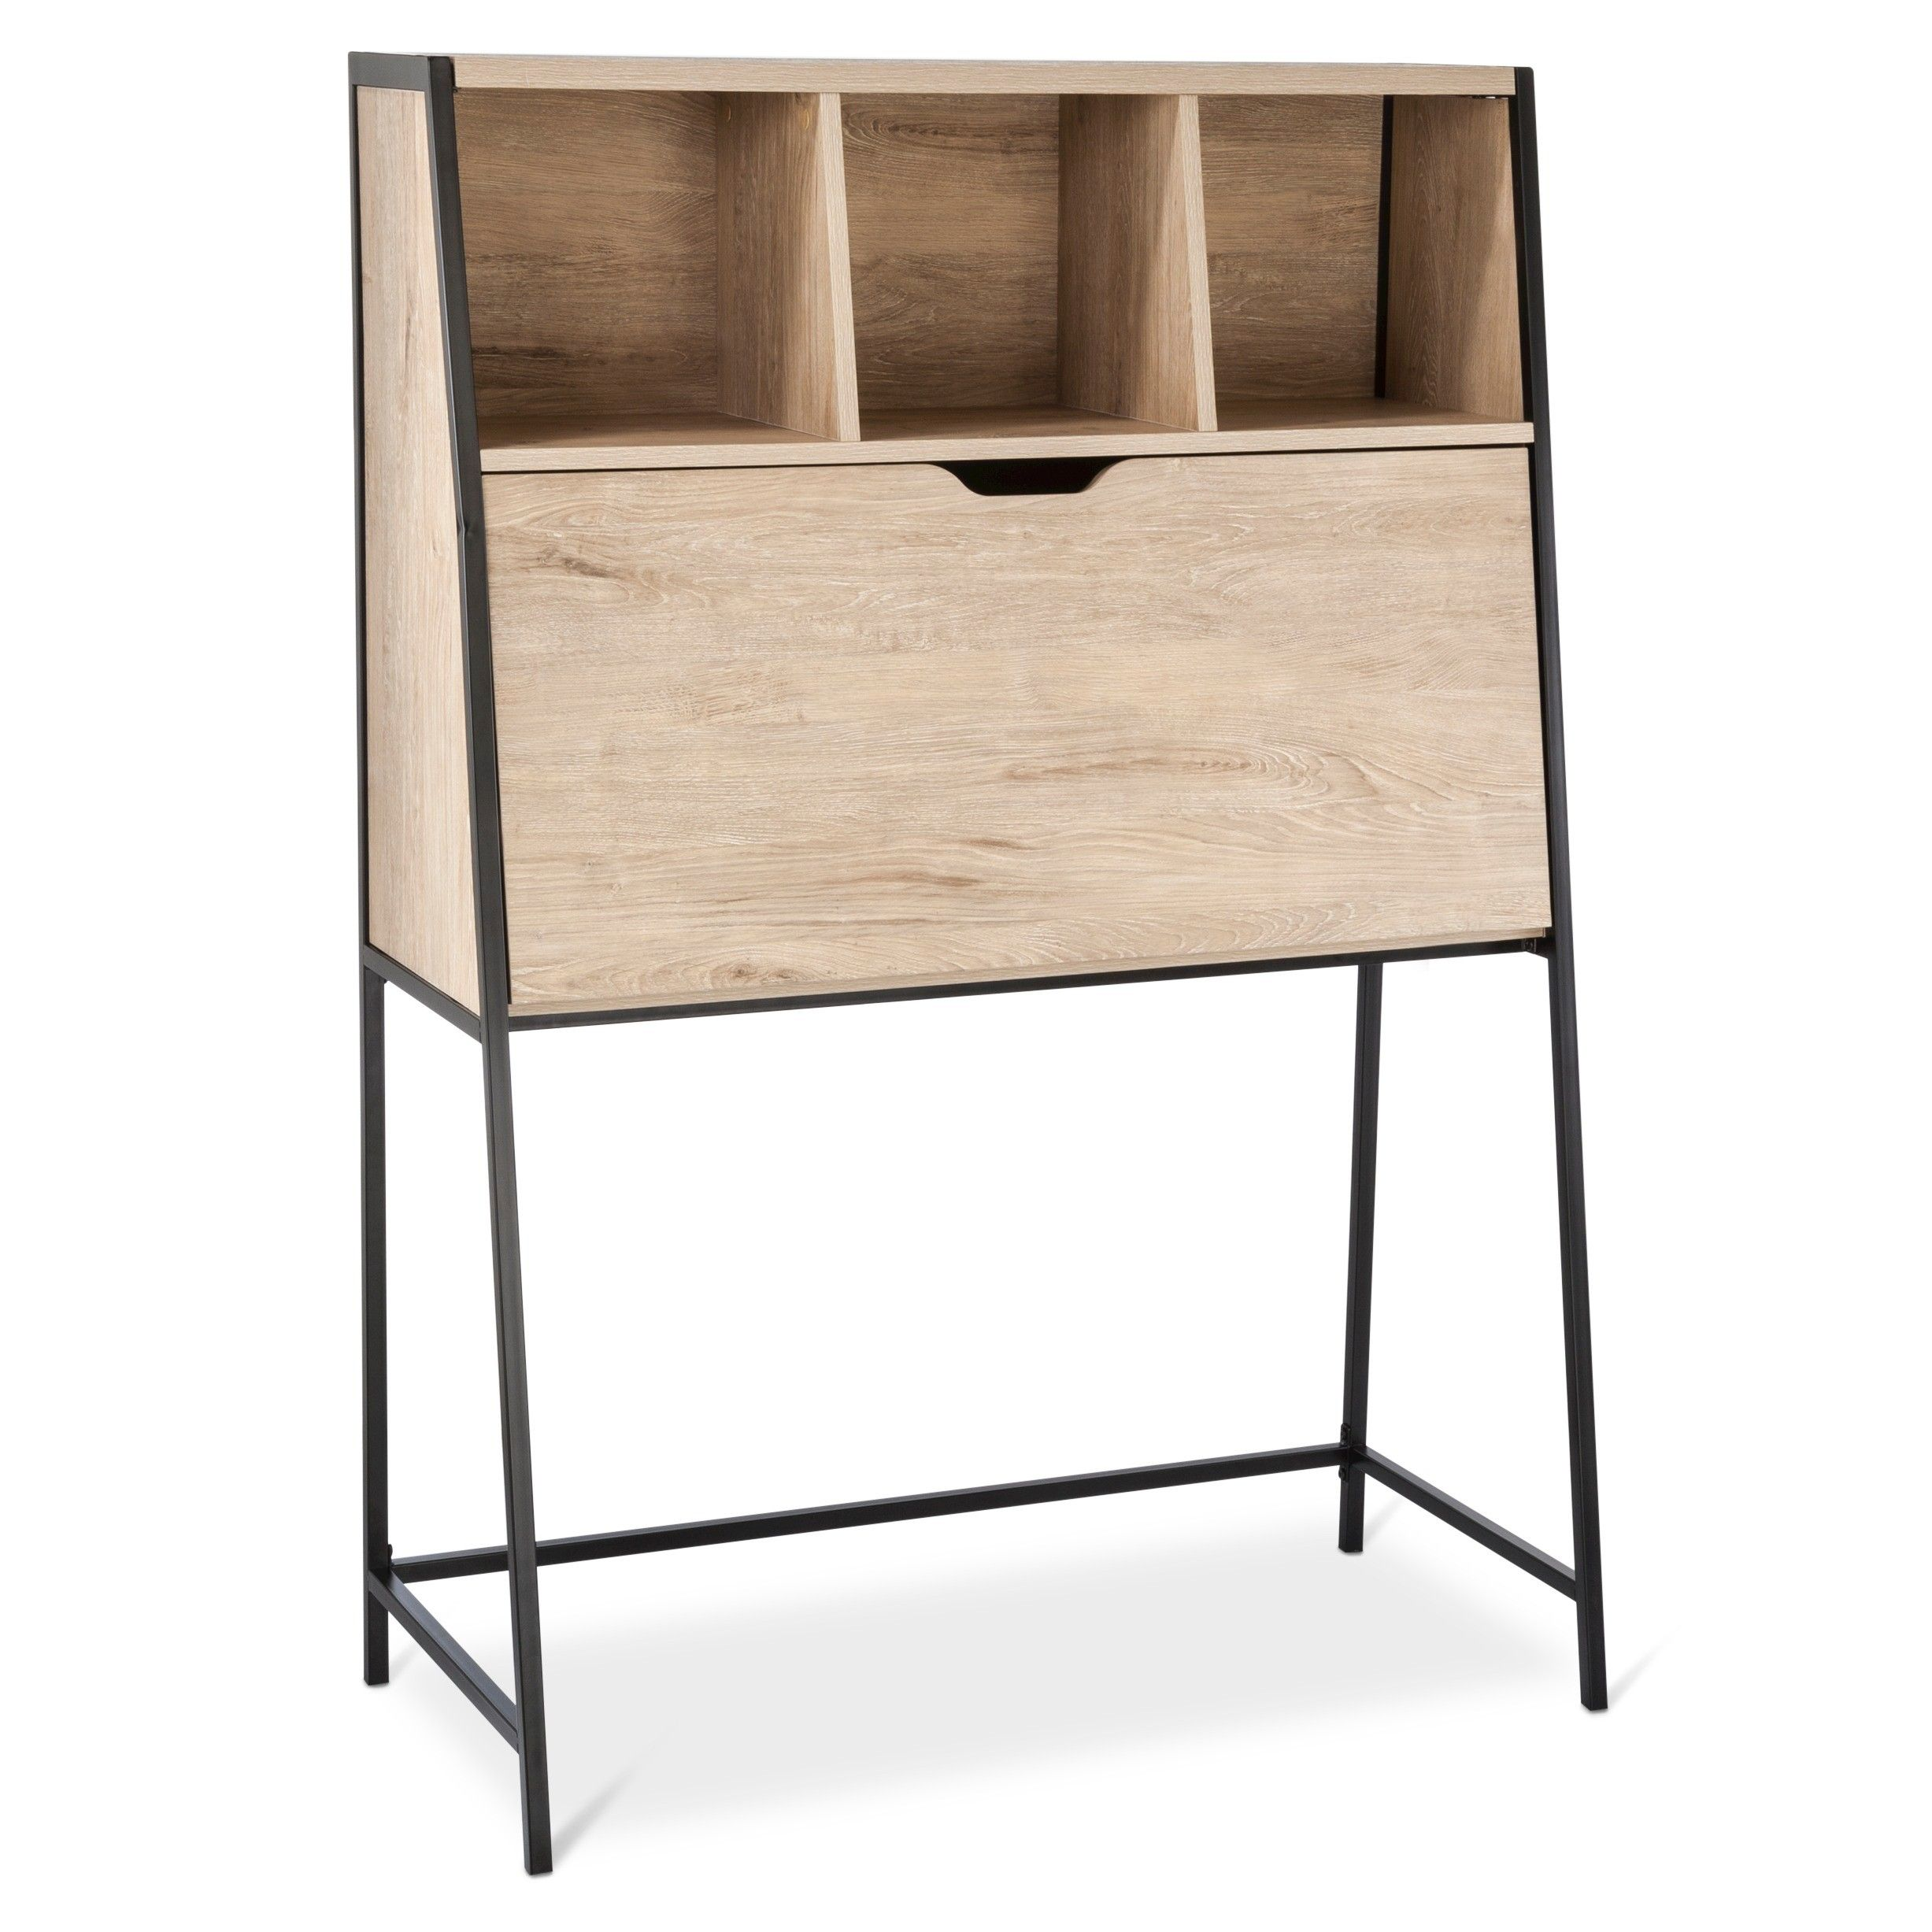 The Threshold™ Darley Drop-Down Desk combines tradition and ...